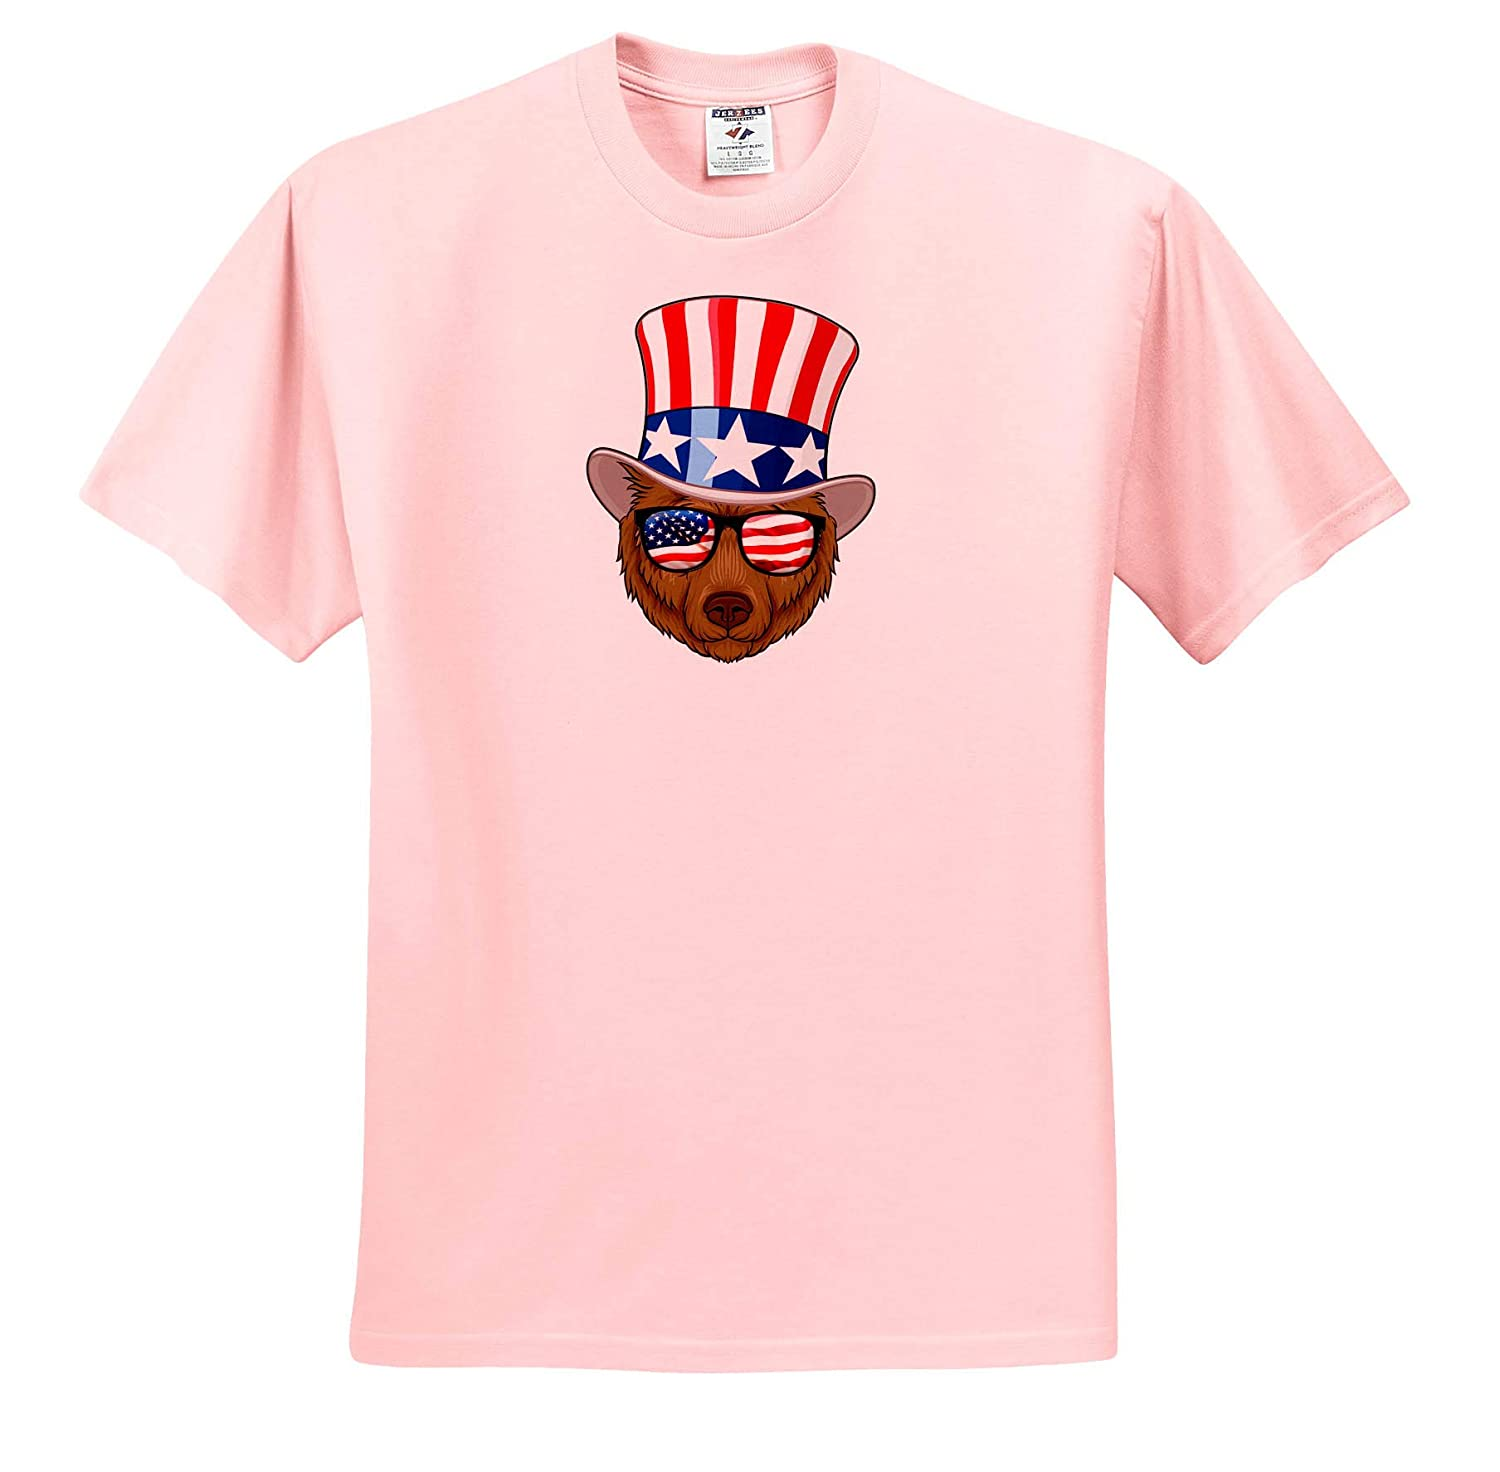 T-Shirts Illustrations Patriotic Panda with top hat and Sunglasses with The American Flag 3dRose Carsten Reisinger